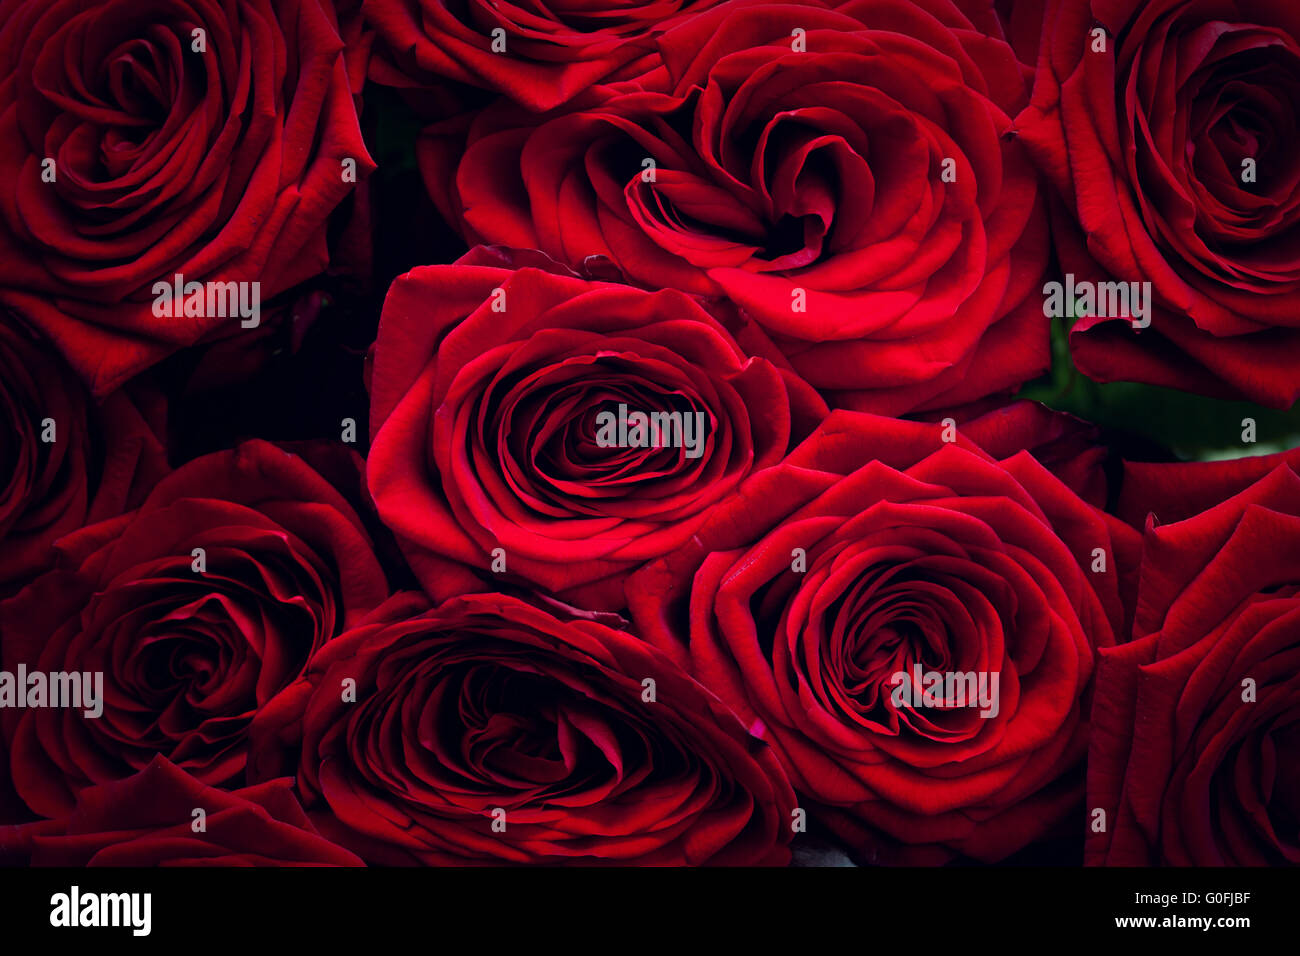 Red wet roses isolated on black background. Great as design element or greeting card for Valentines day - Stock Image